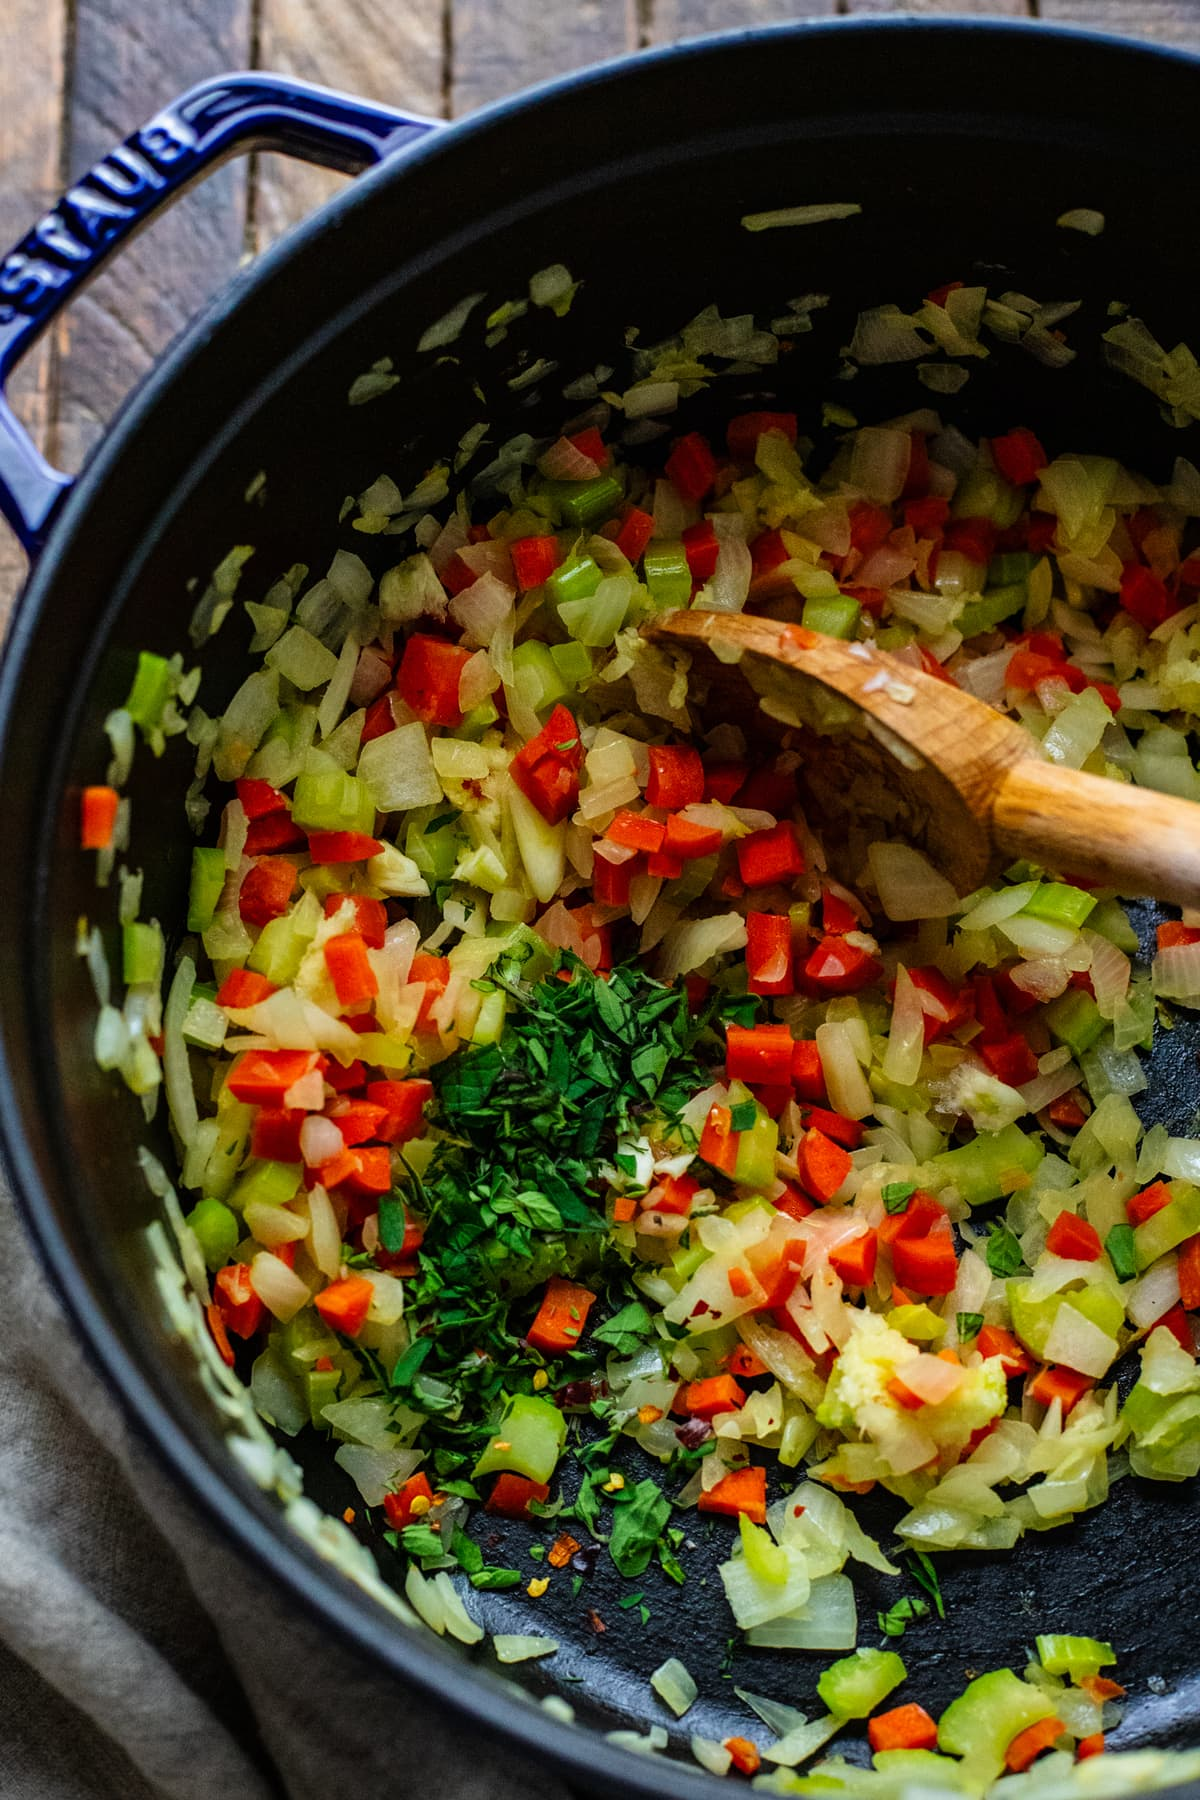 wooden spoon stirring chopped vegetables and herbs in cast iron pot.